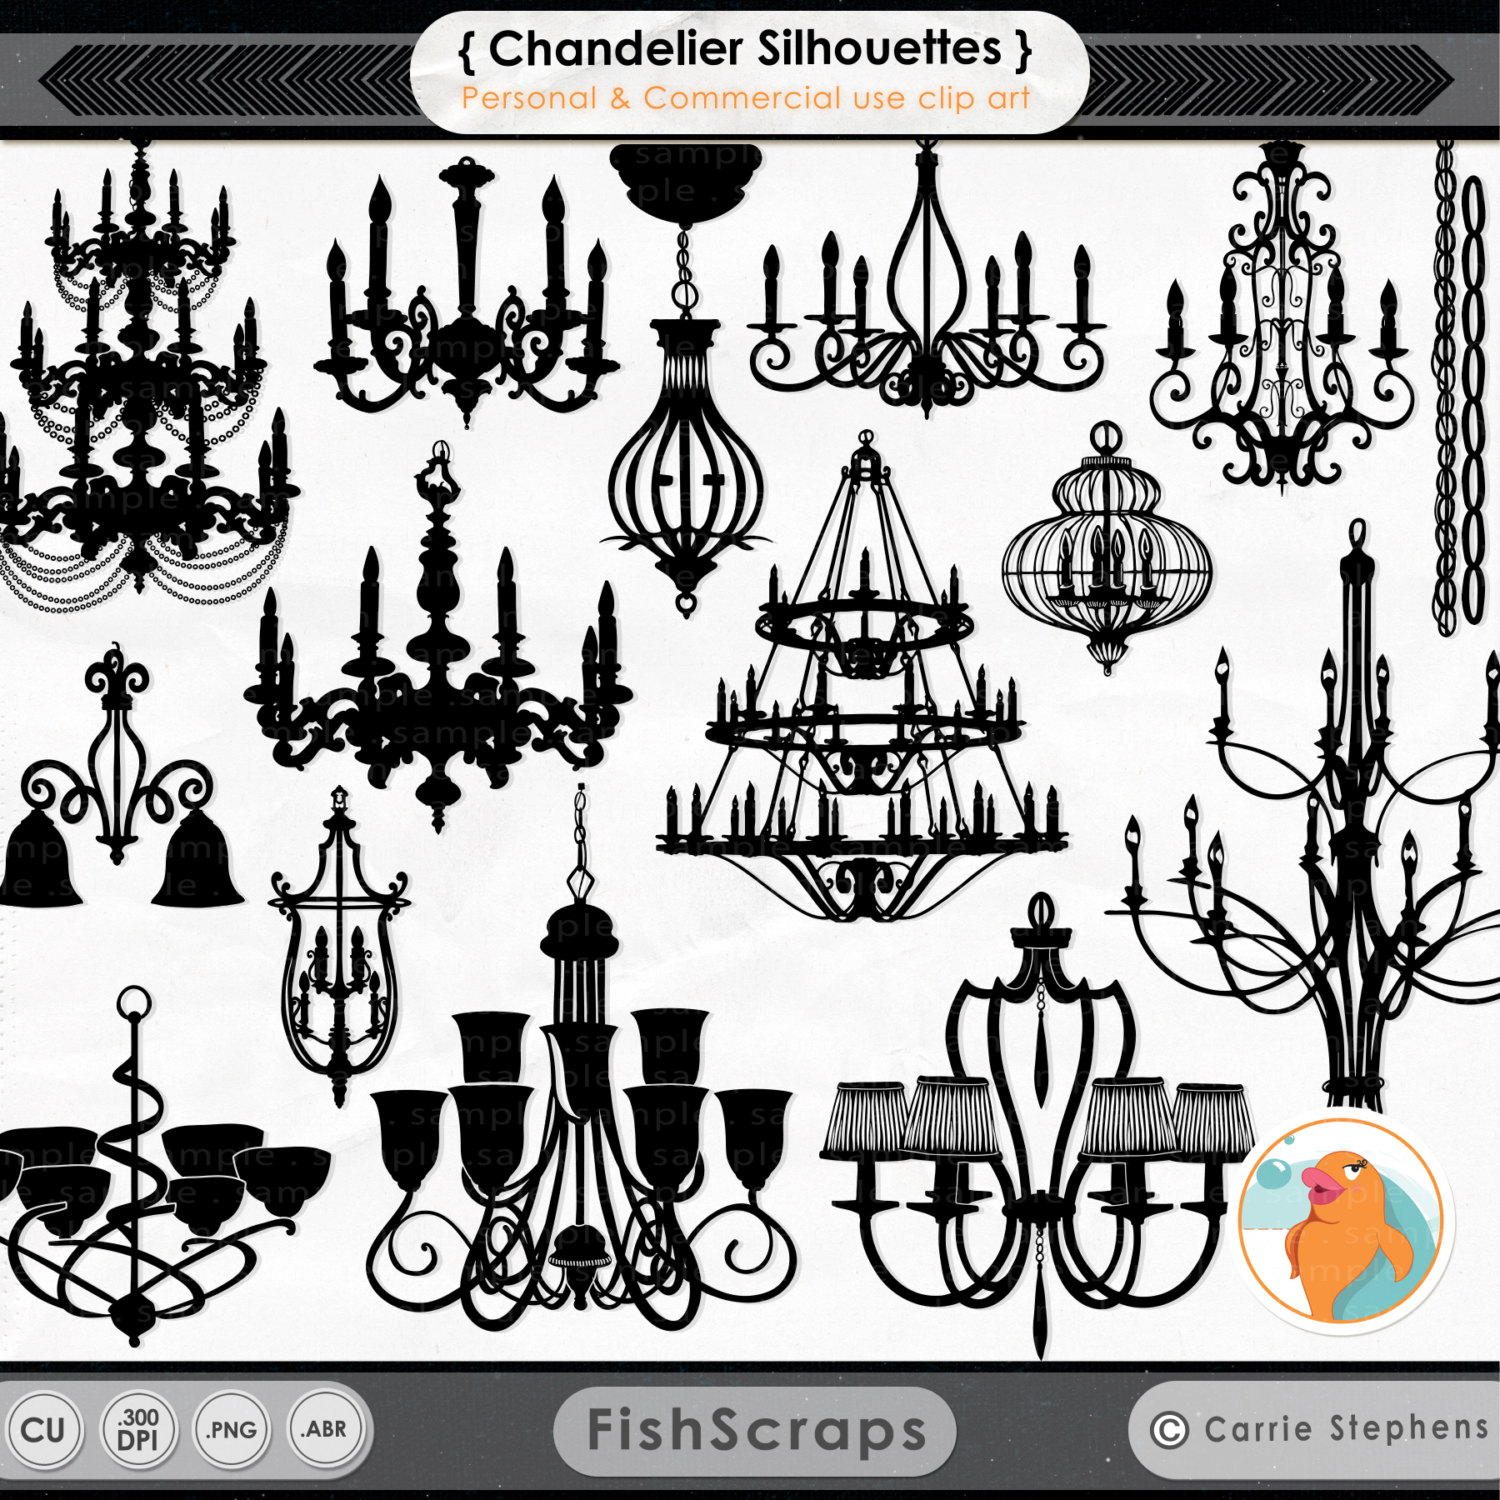 Chandelier clipart ceiling lamp Like item? Silhouettes Chandelier this